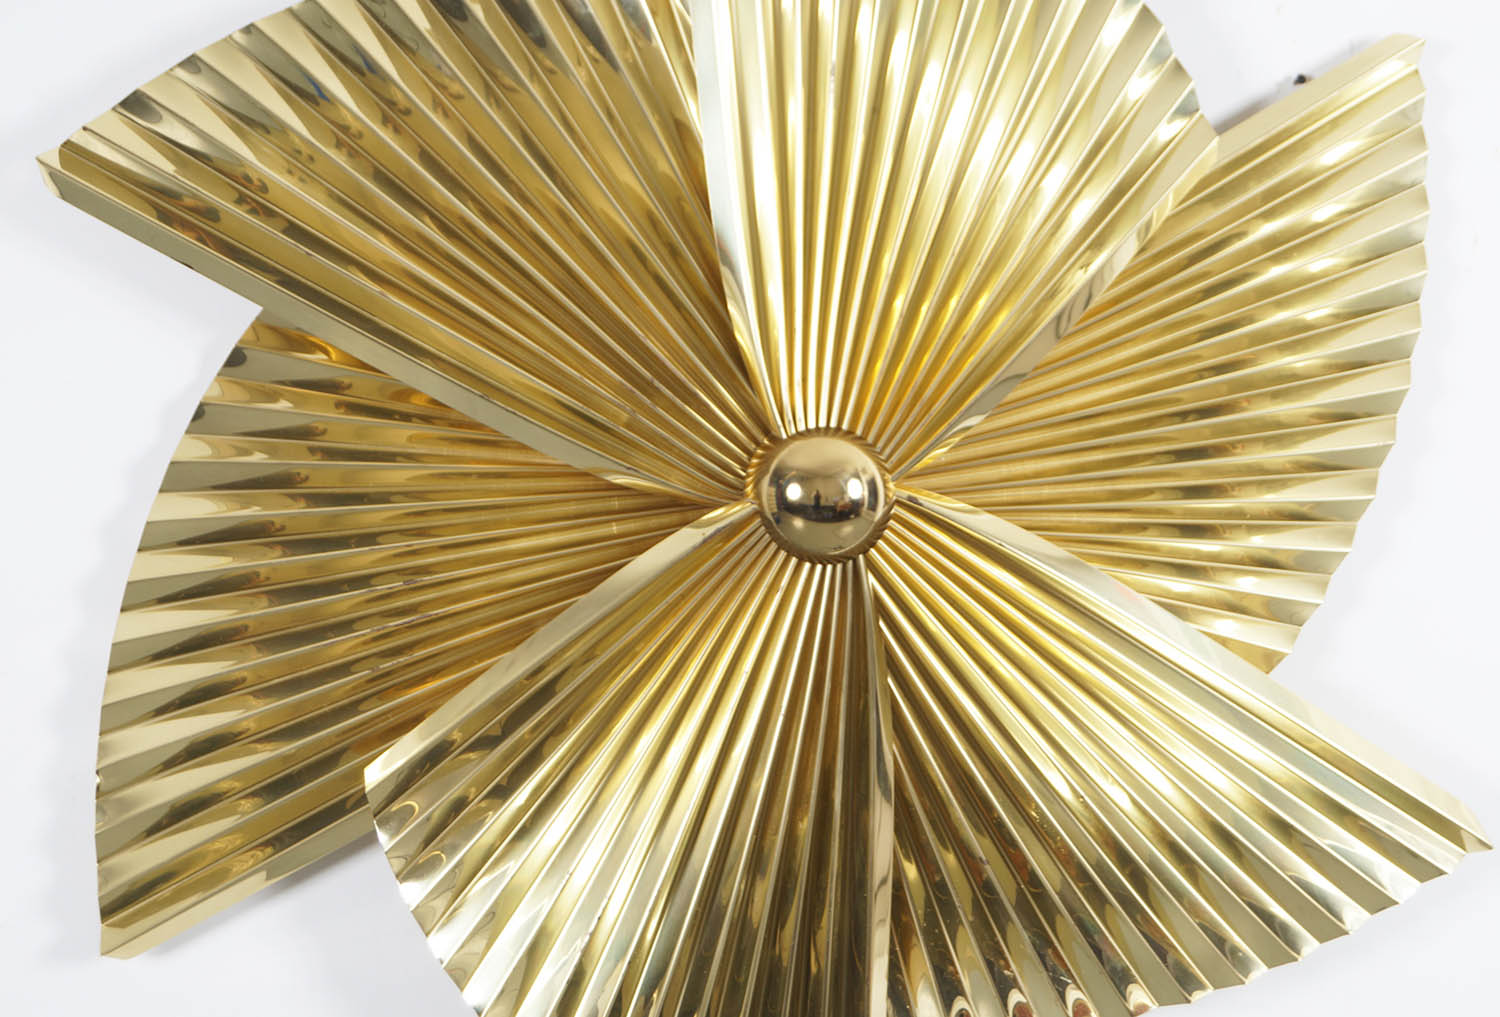 Vintage Brass Pinwheel Wall Sculpture by Curtis Jere